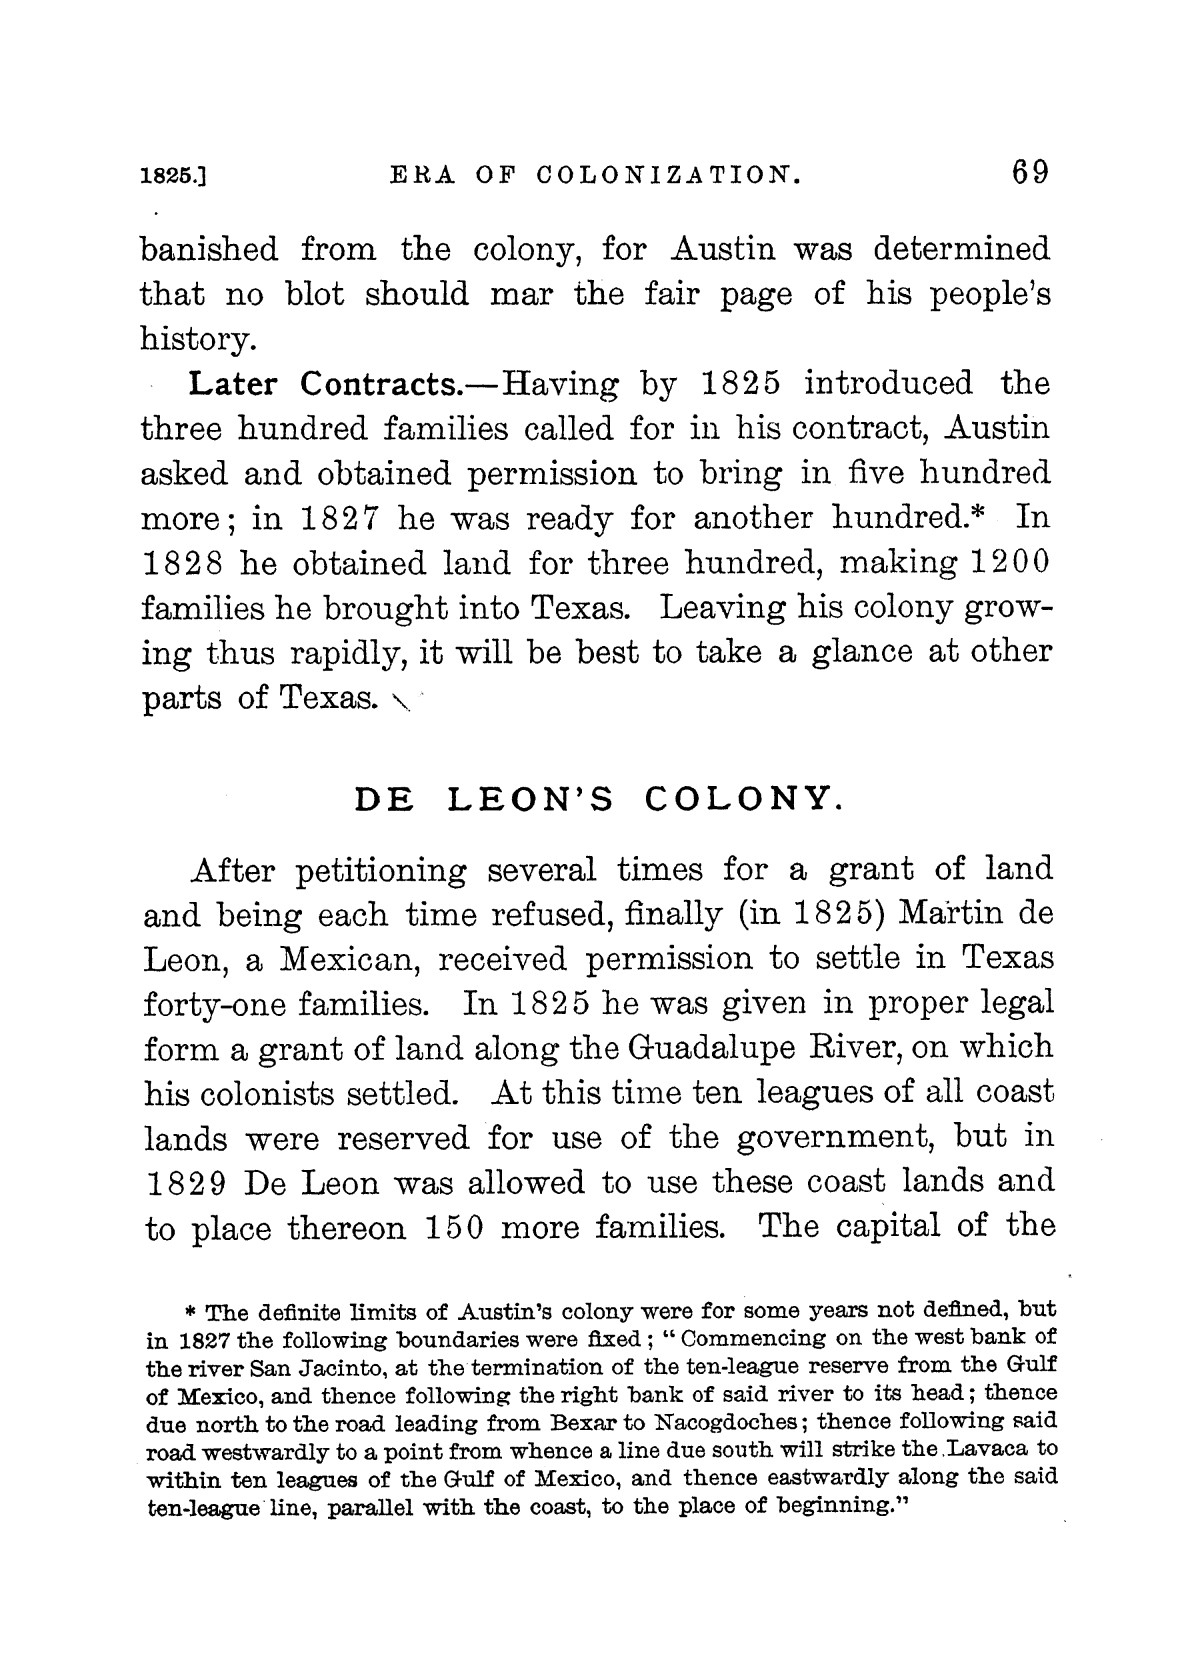 A new history of Texas for schools : also for general reading and for teachers preparing themselves for examination                                                                                                      [Sequence #]: 83 of 412